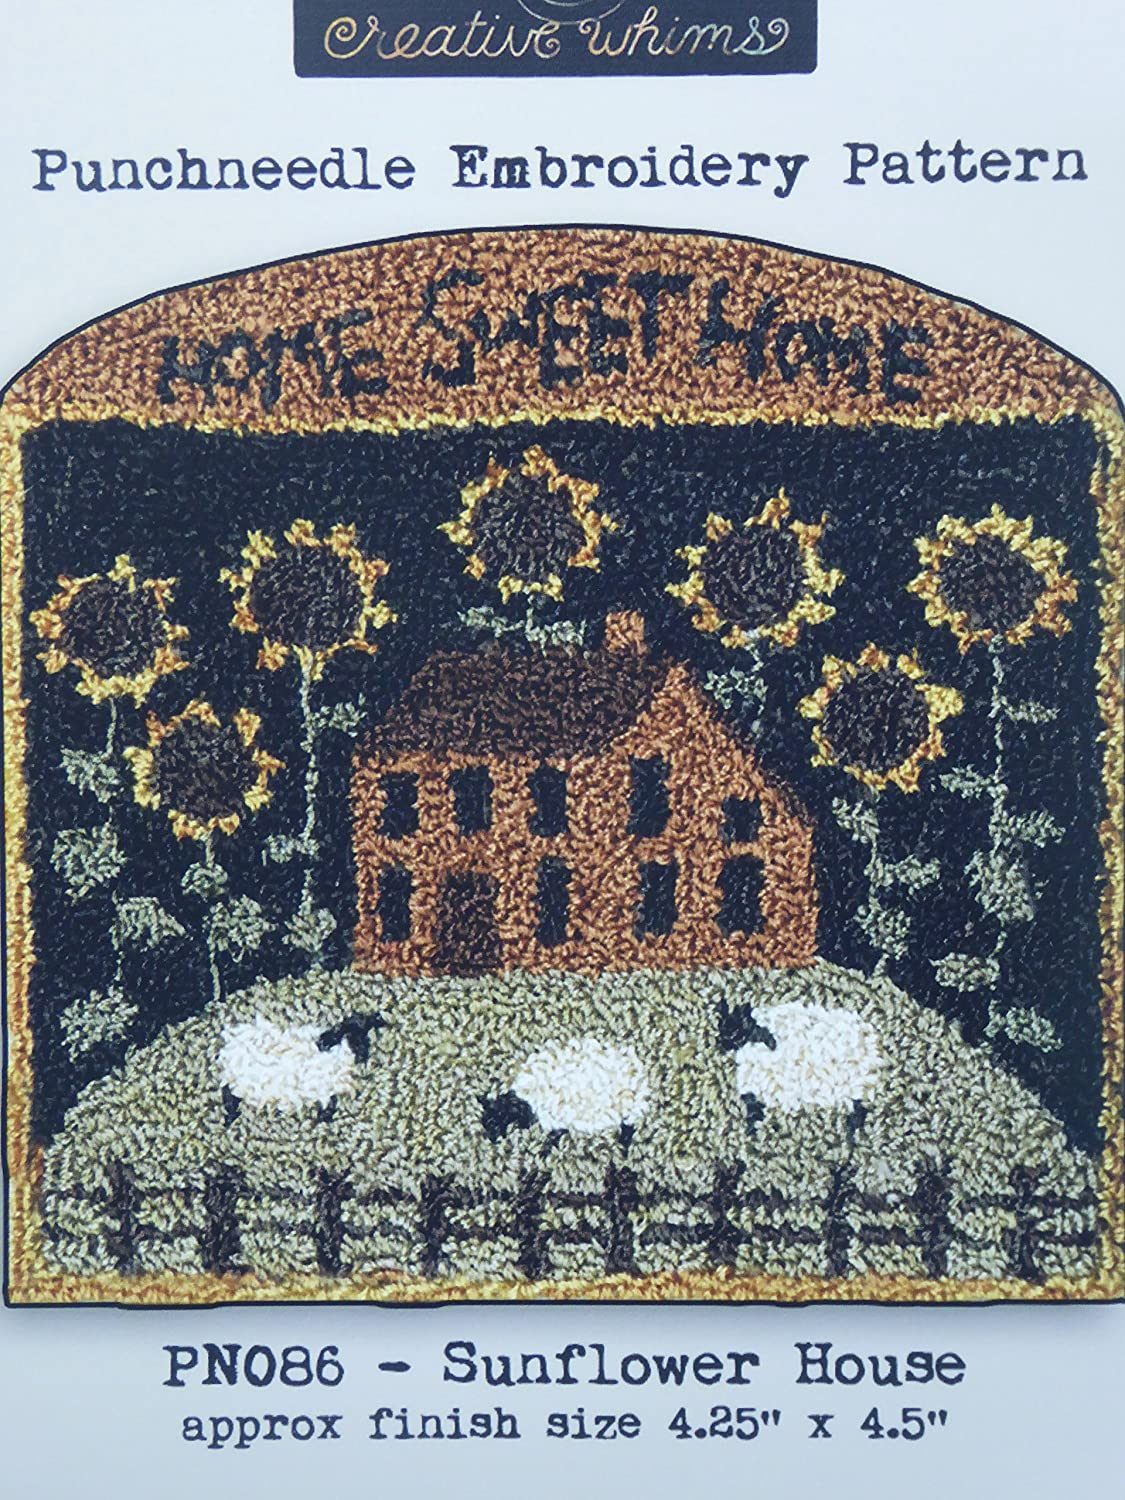 Sunflower House Home Sweet Home PN086 Punchneedle Punch Needle Embroidery Teresa Kogut Pattern